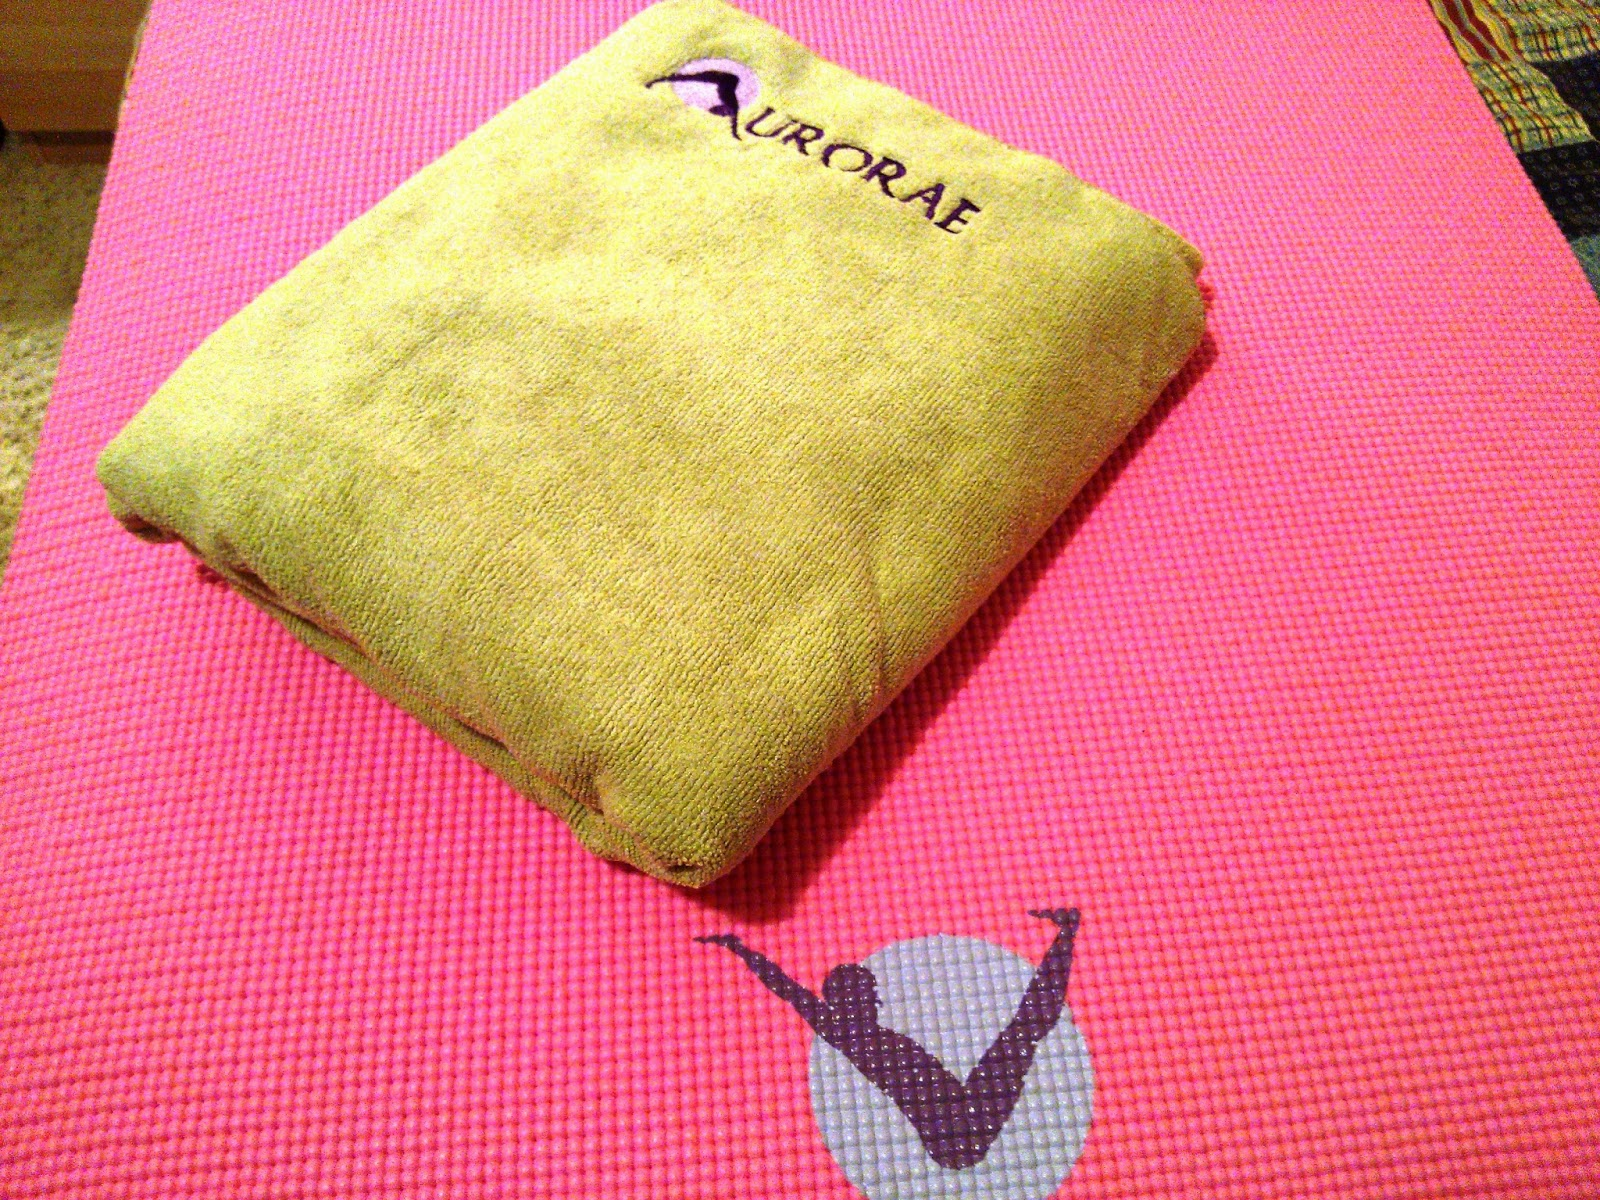 Aurorae's Sport/Yoga Mat Towel Review